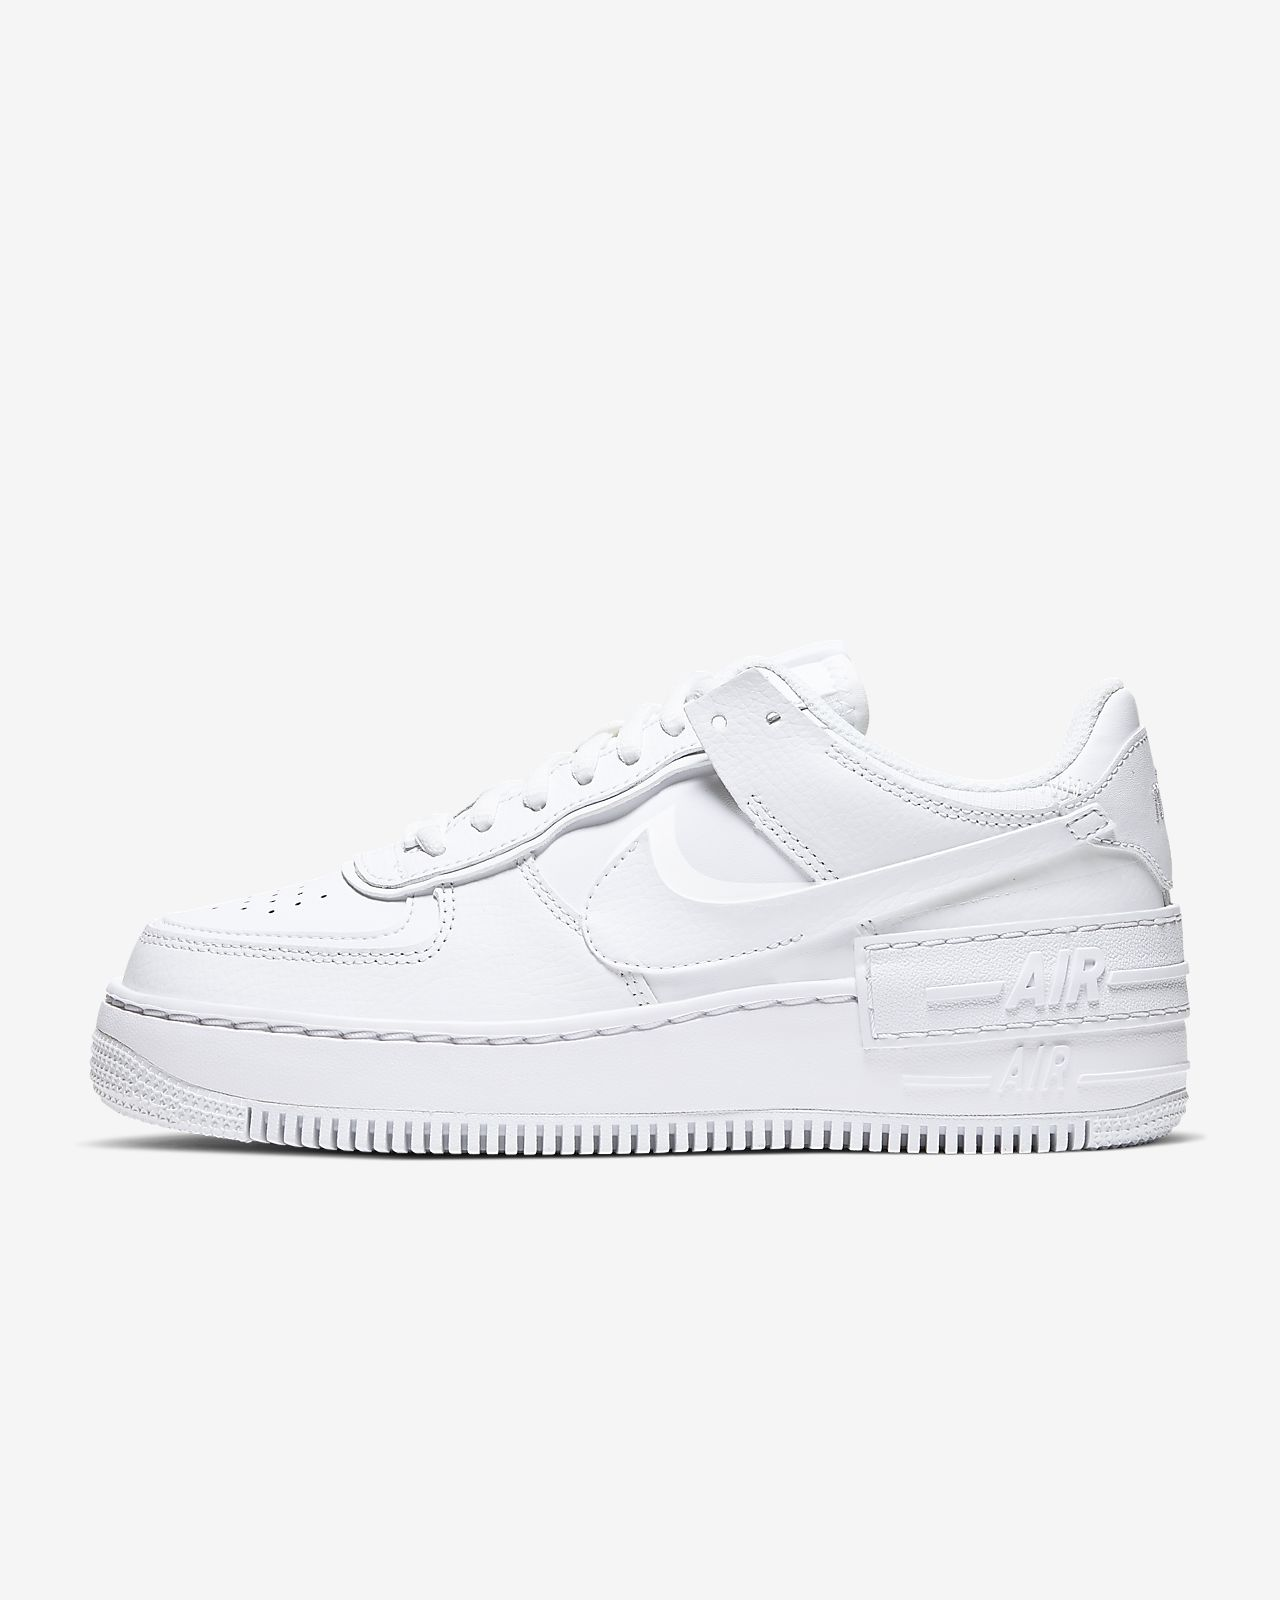 nike air force 1 sage low sneaker modeled